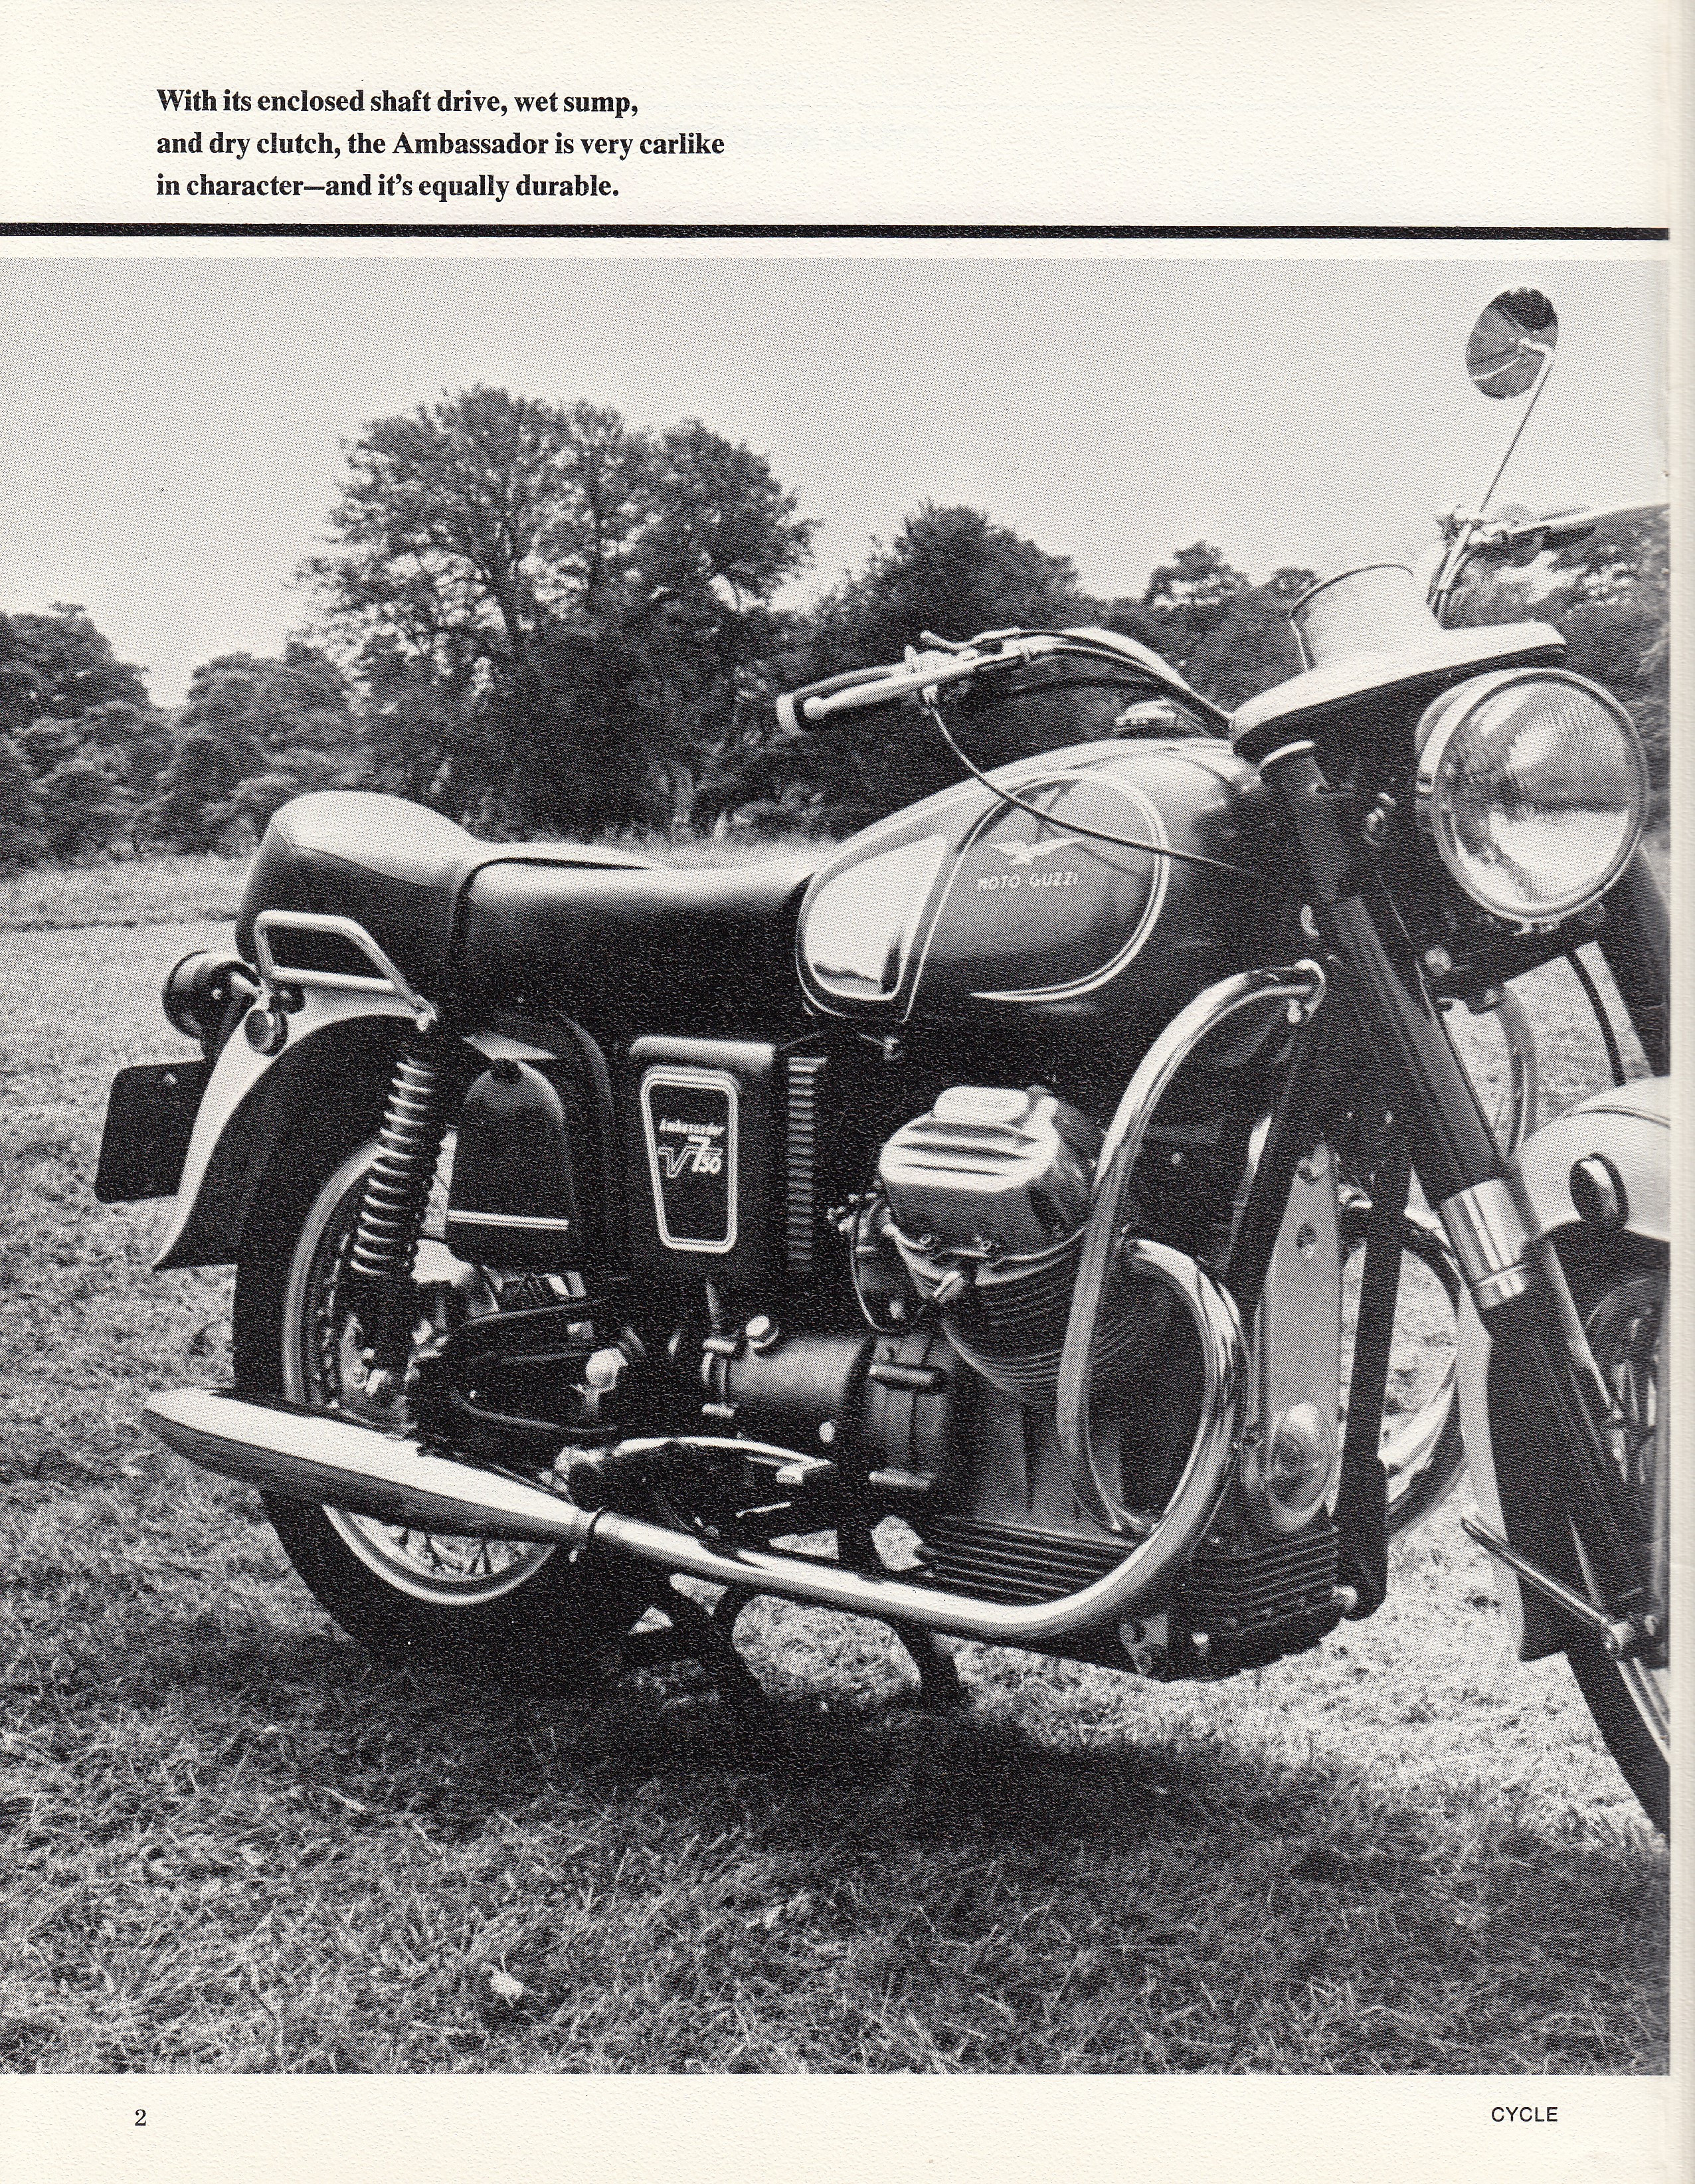 Moto Guzzi Ambassador factory brochure of magazine reviews, Page 2 of 16.